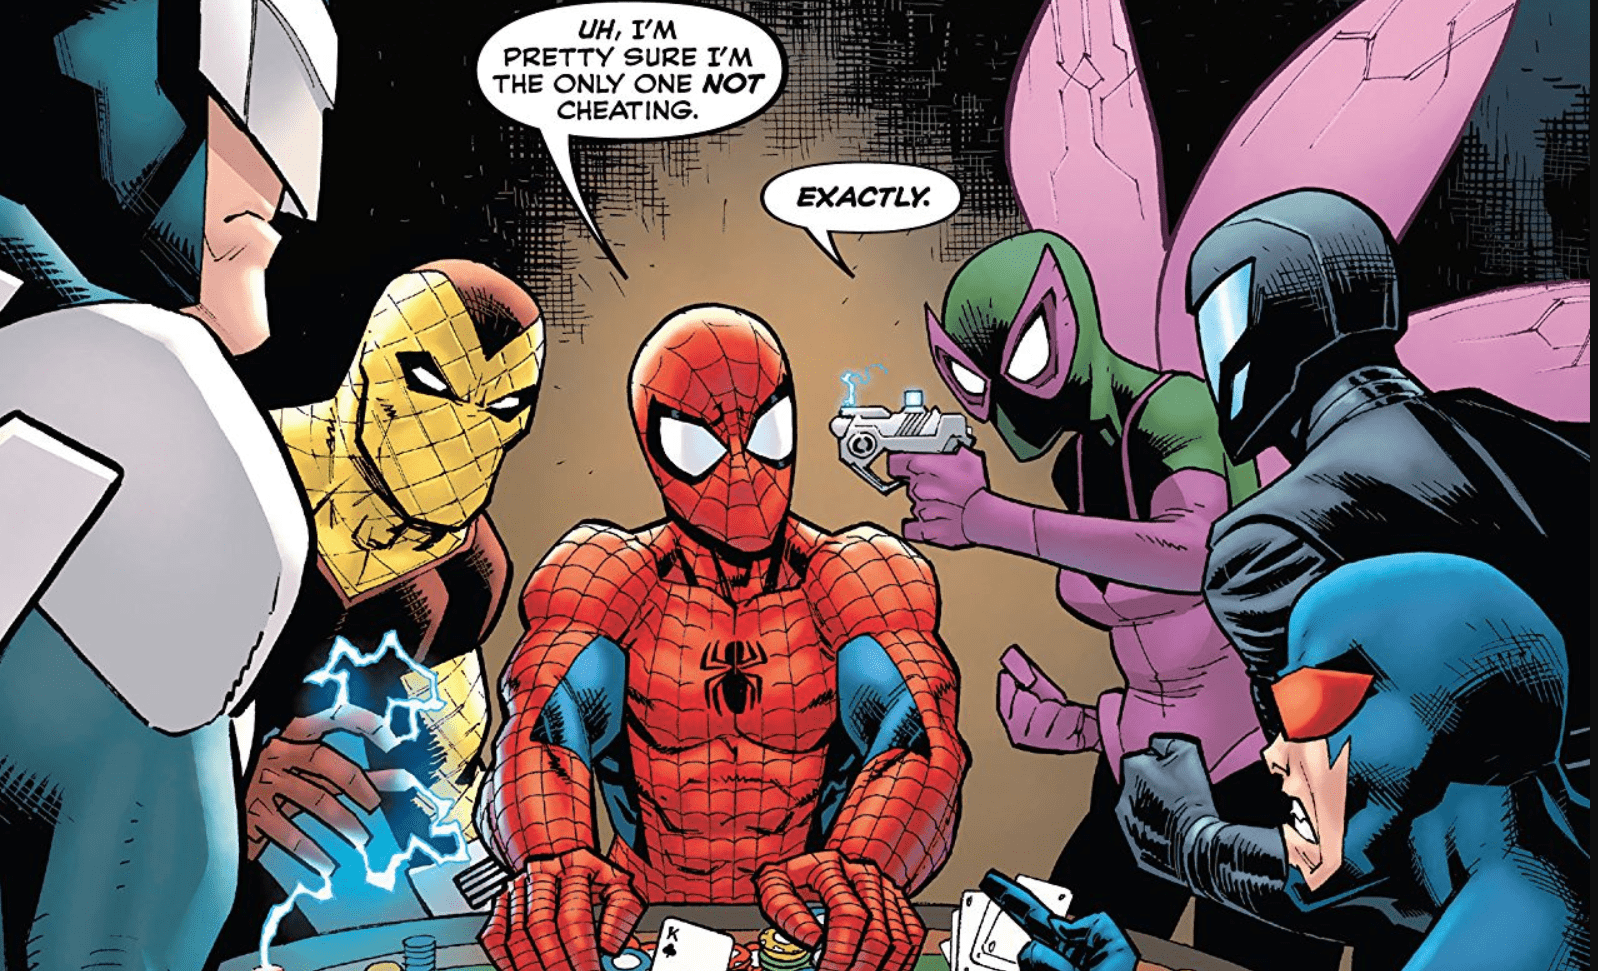 EXCLUSIVE Marvel Preview: Amazing Spider-Man #26